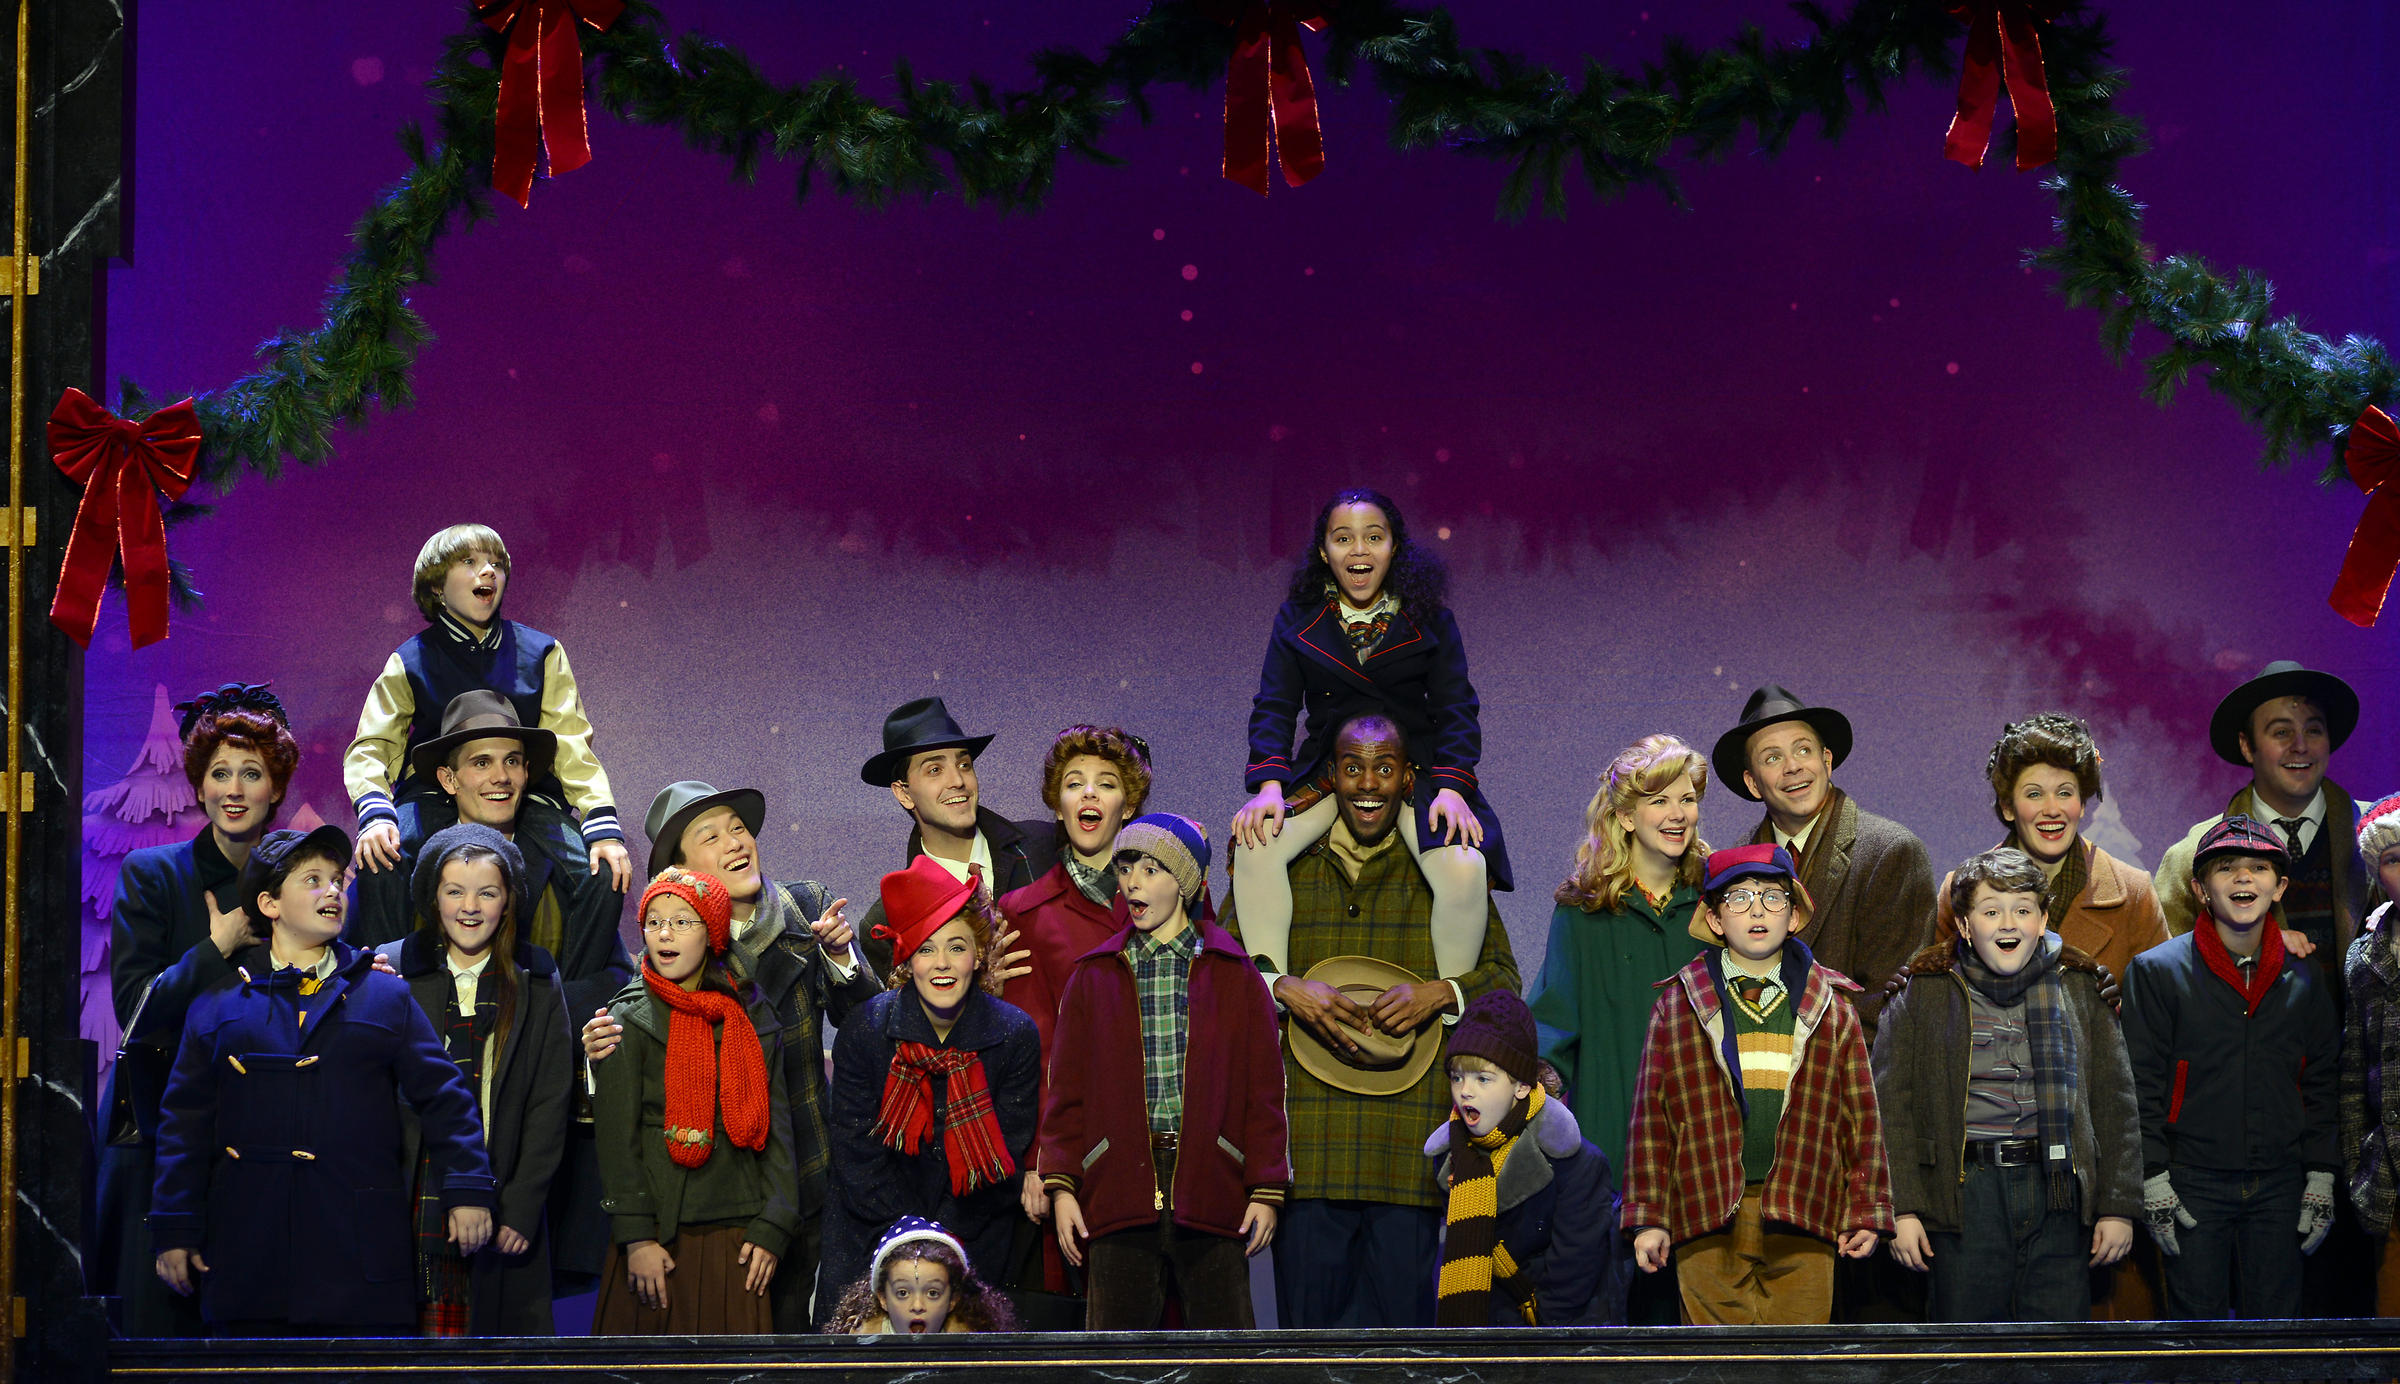 see a christmas story the musical through jan 4 at the fabulous fox theatre in st louis - A Christmas Story Musical